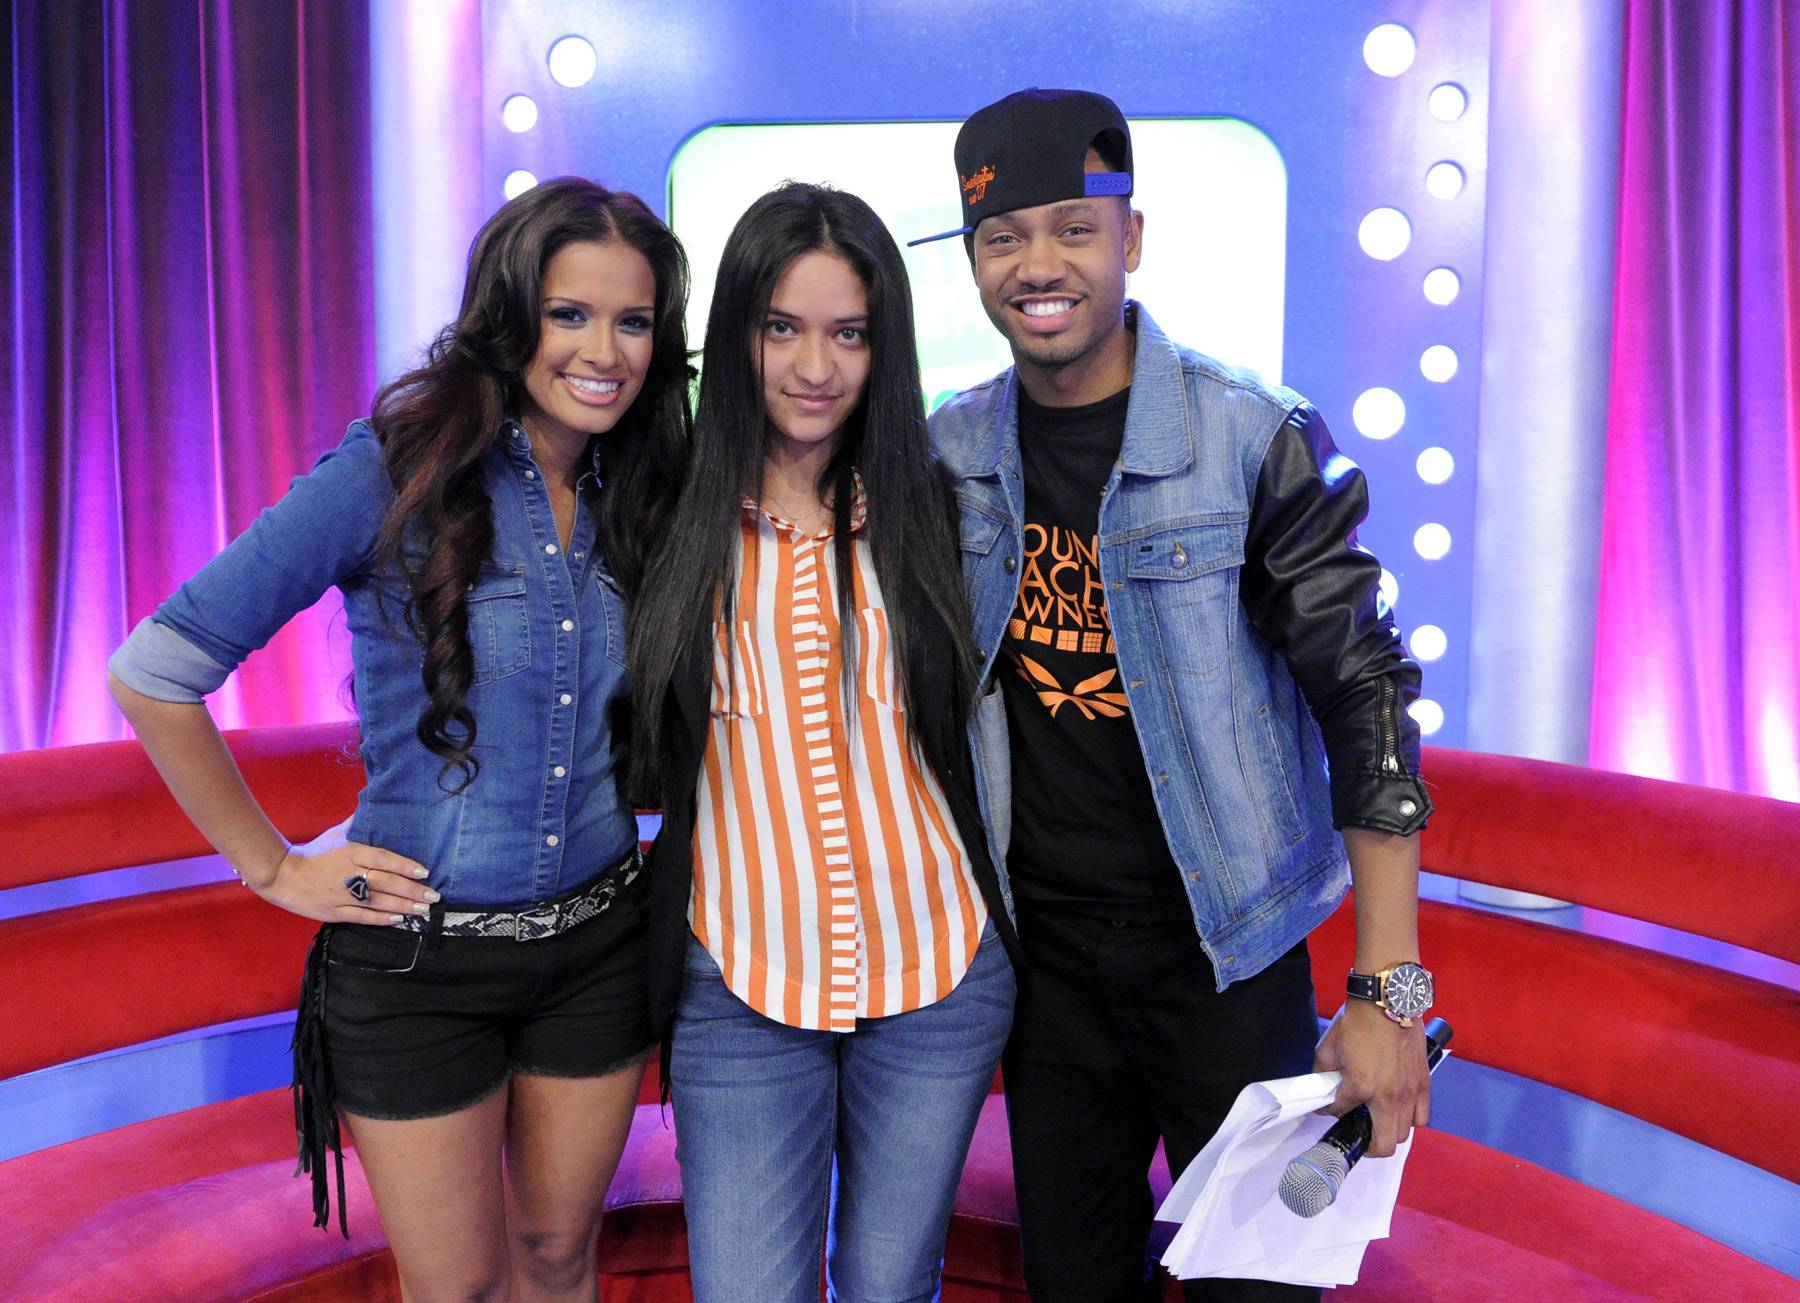 Giving Back! - Terrence J and Rocsi Diaz with her mentee from Petals-N-Belles at 106 & Park, May 2, 2012. (Photo: John Ricard/BET)